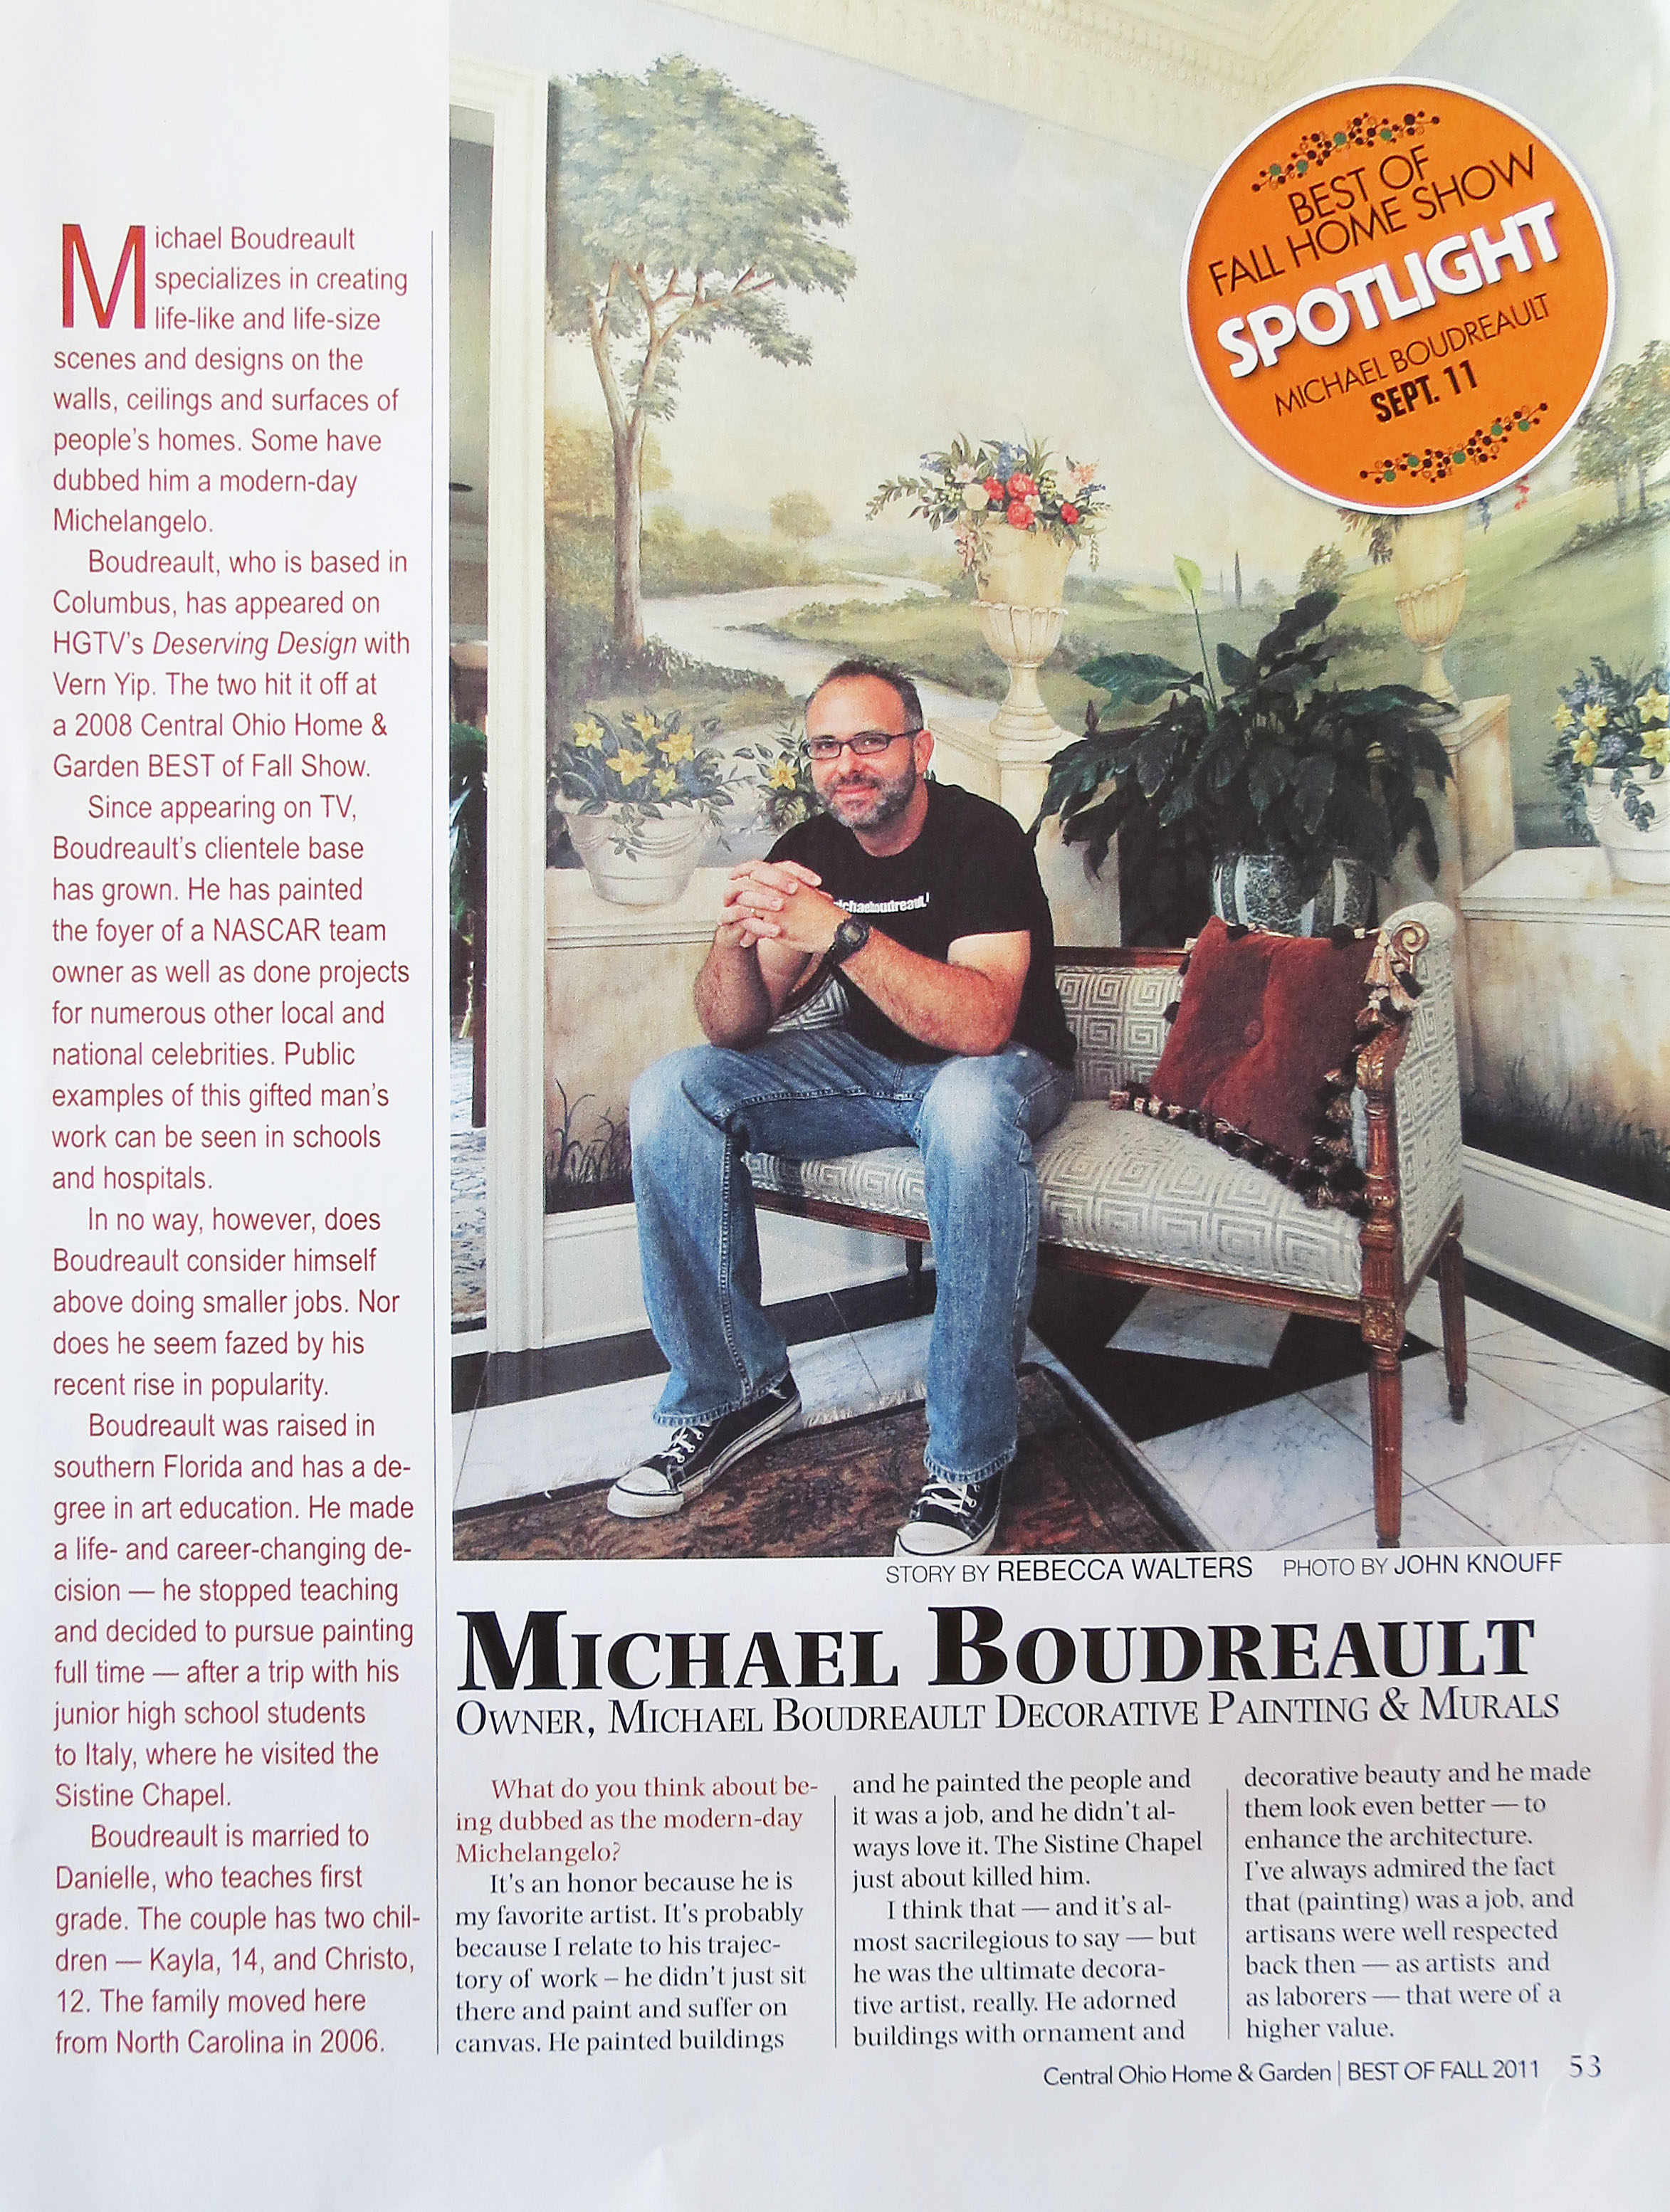 Michael Boudreault of Artisan Rooms